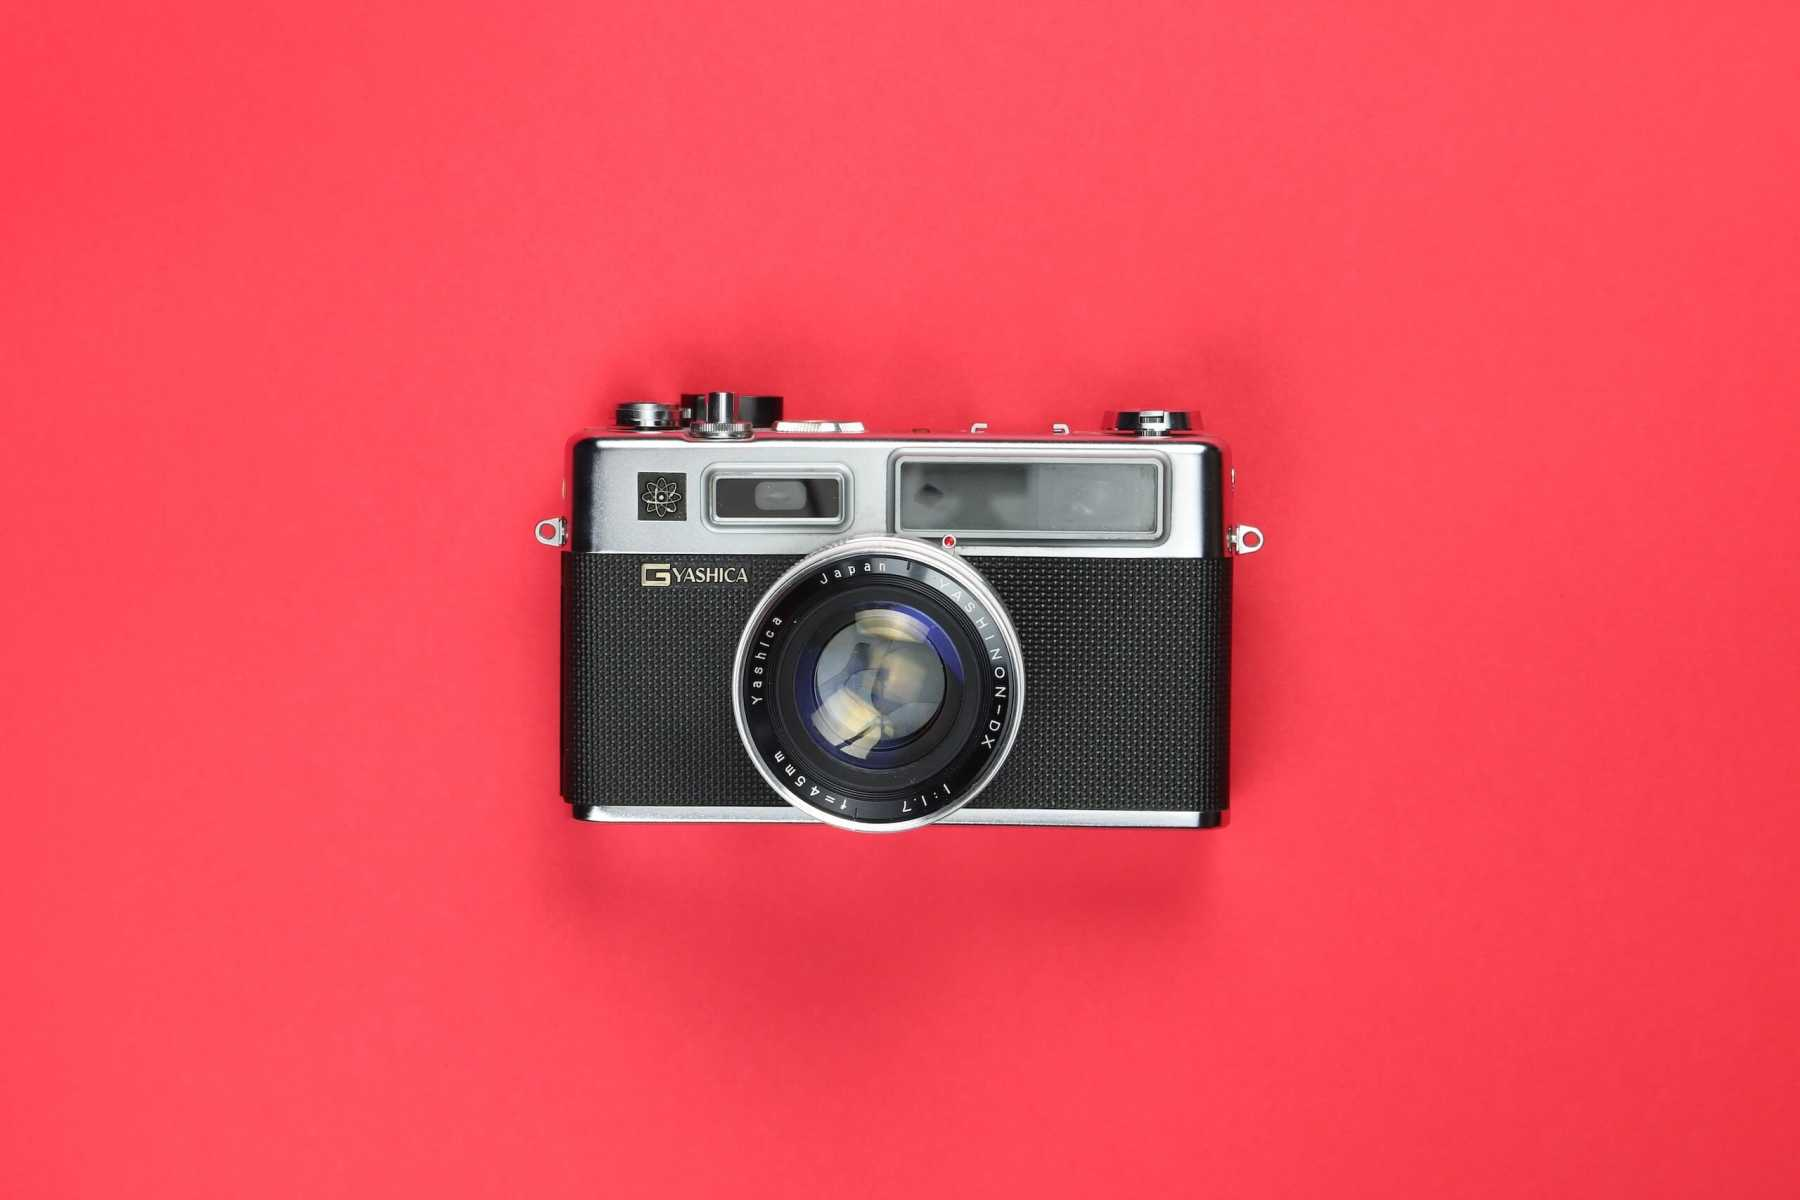 A vintage camera on a red background.